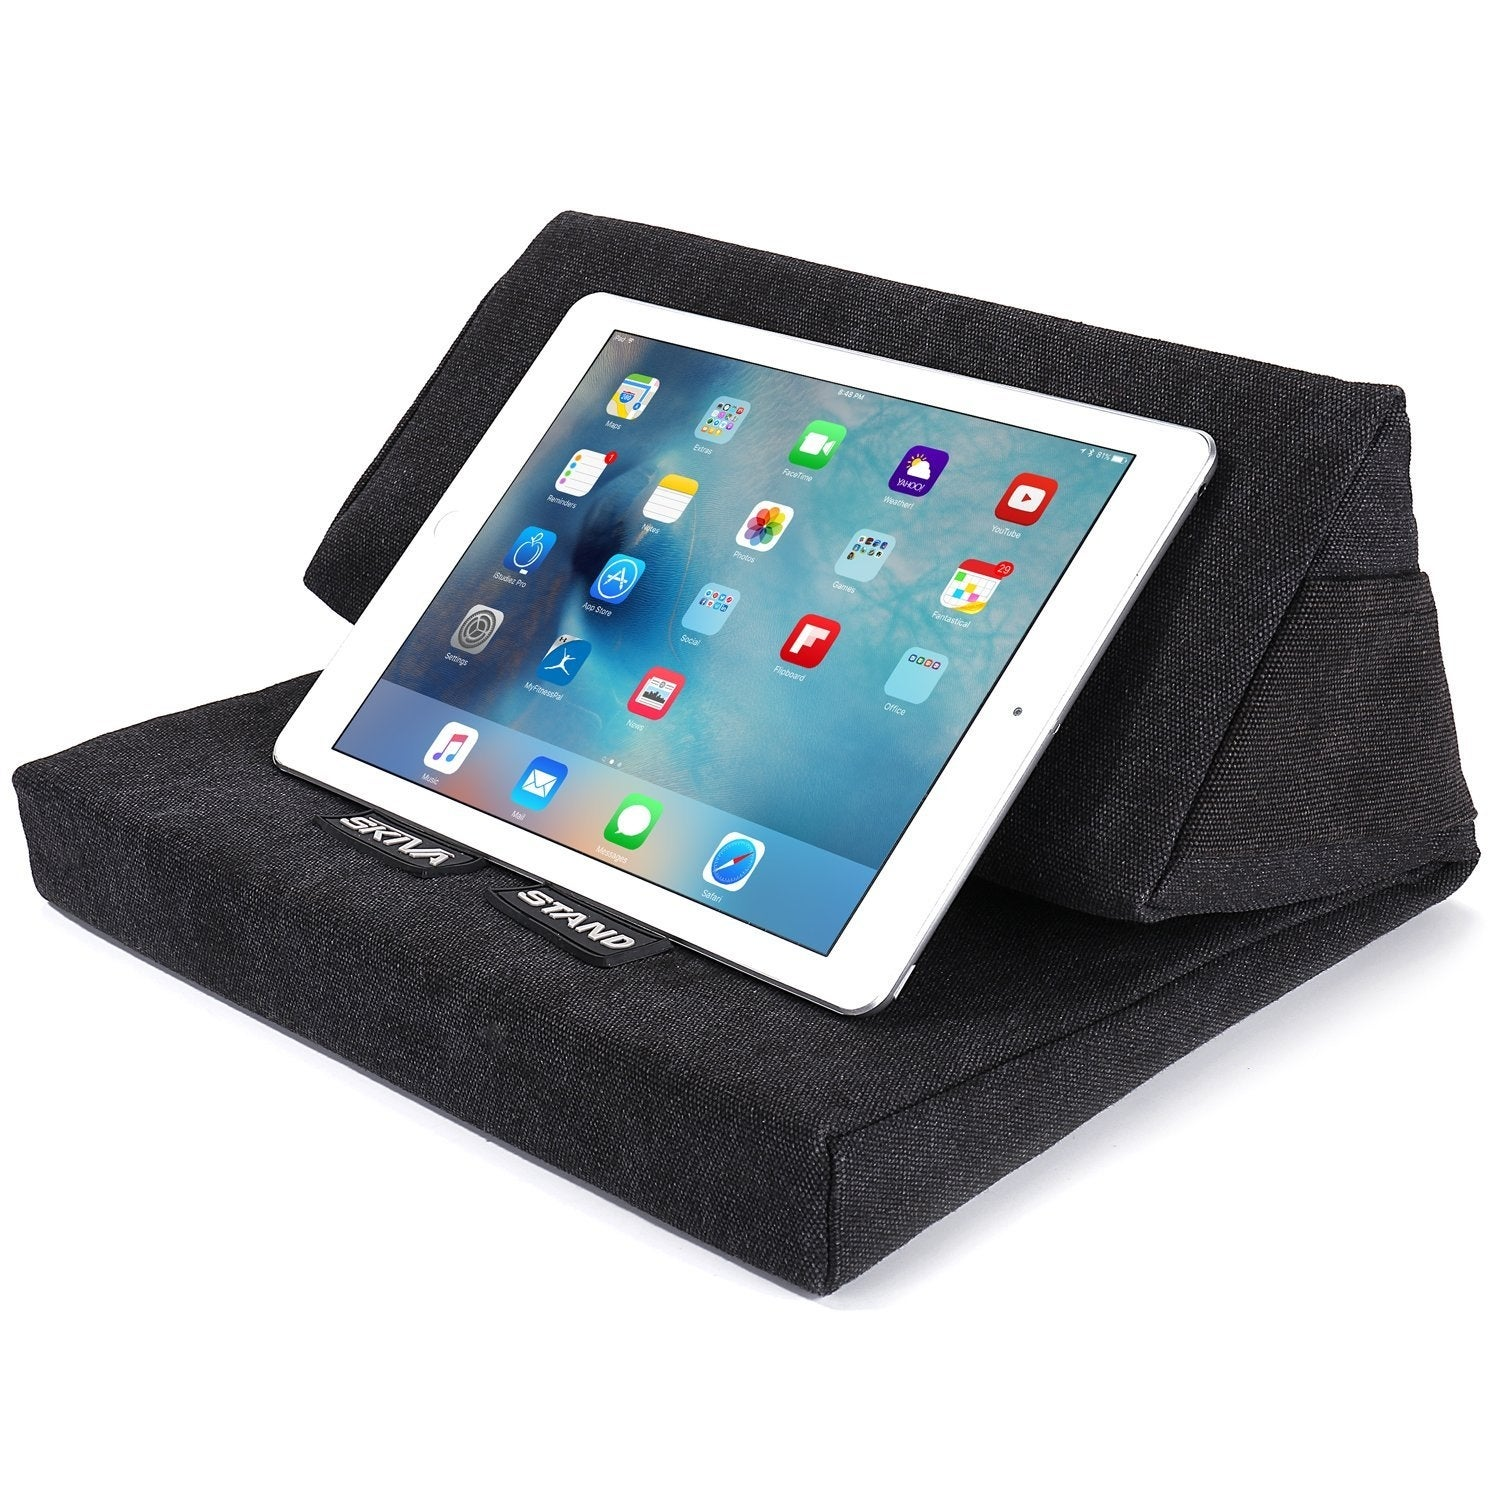 Skiva EasyStand Pad Pillow Stand for iPad Pro Air mini, iPad 4 3 2 1, Samsung Galaxy Tab Note 10.1, Google Nexus 7 - Thumbnail 0